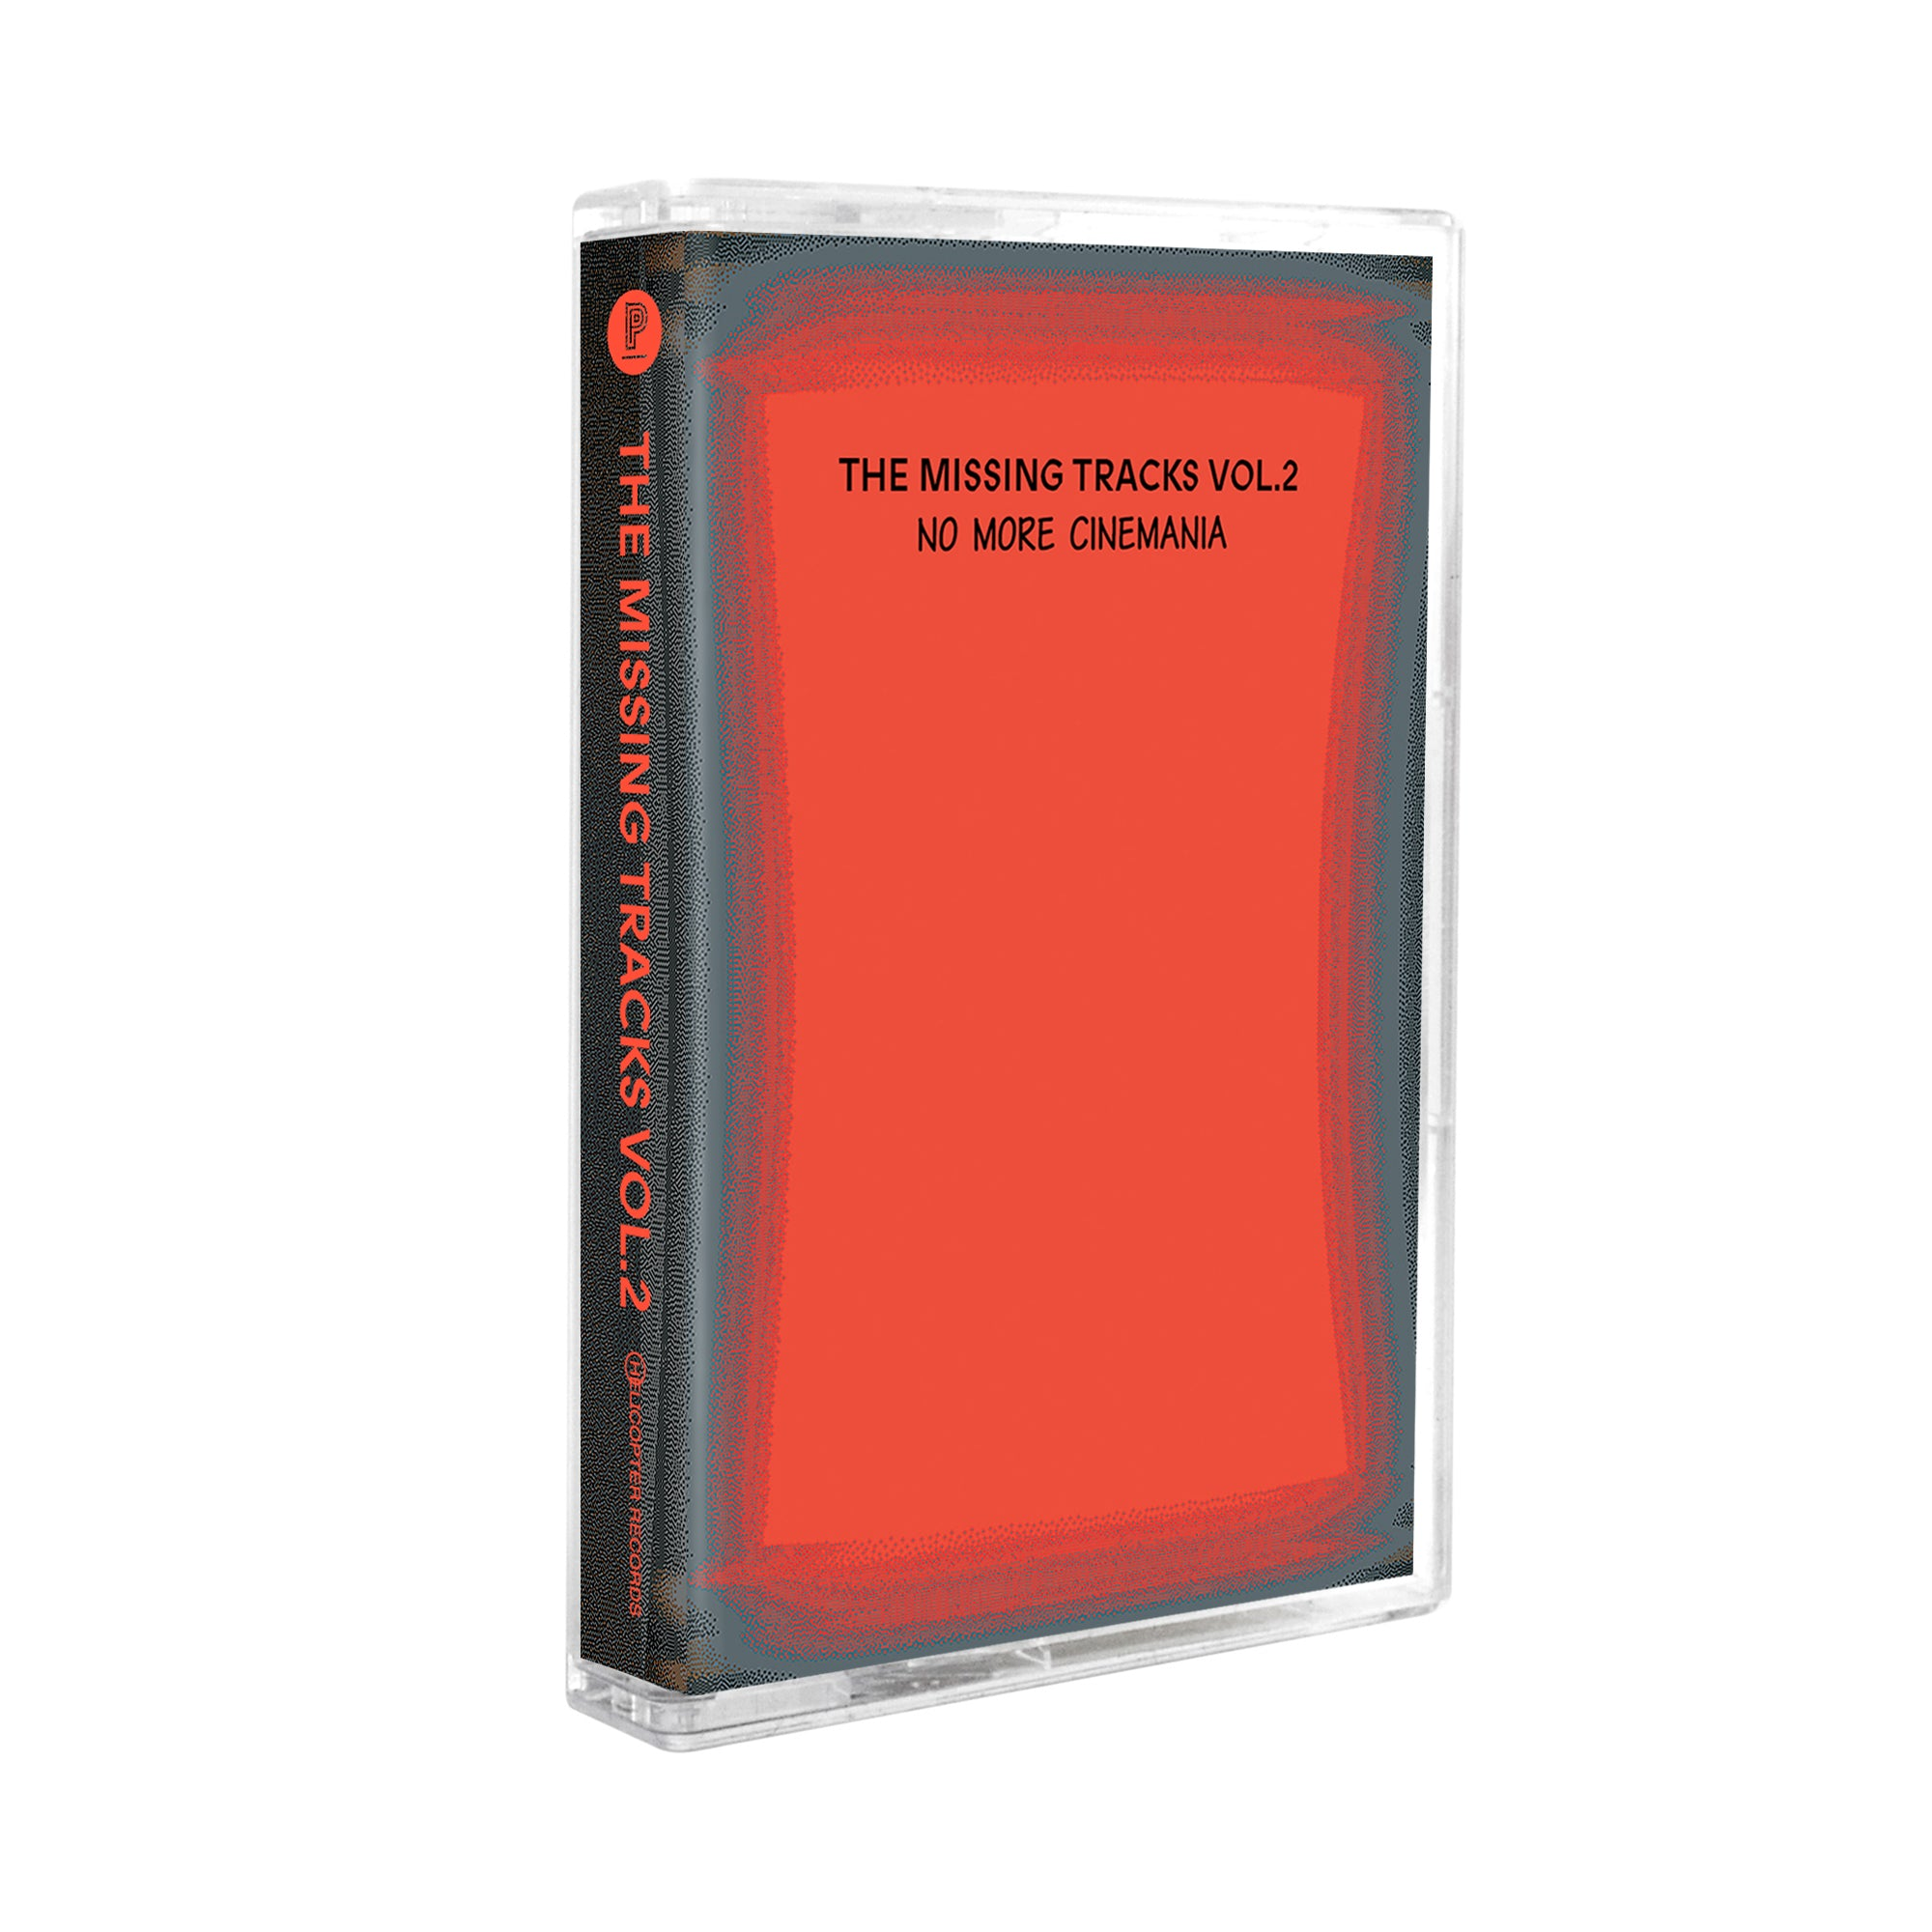 Soundtrack Cassette Tape: The Missing Tracks Vol.2